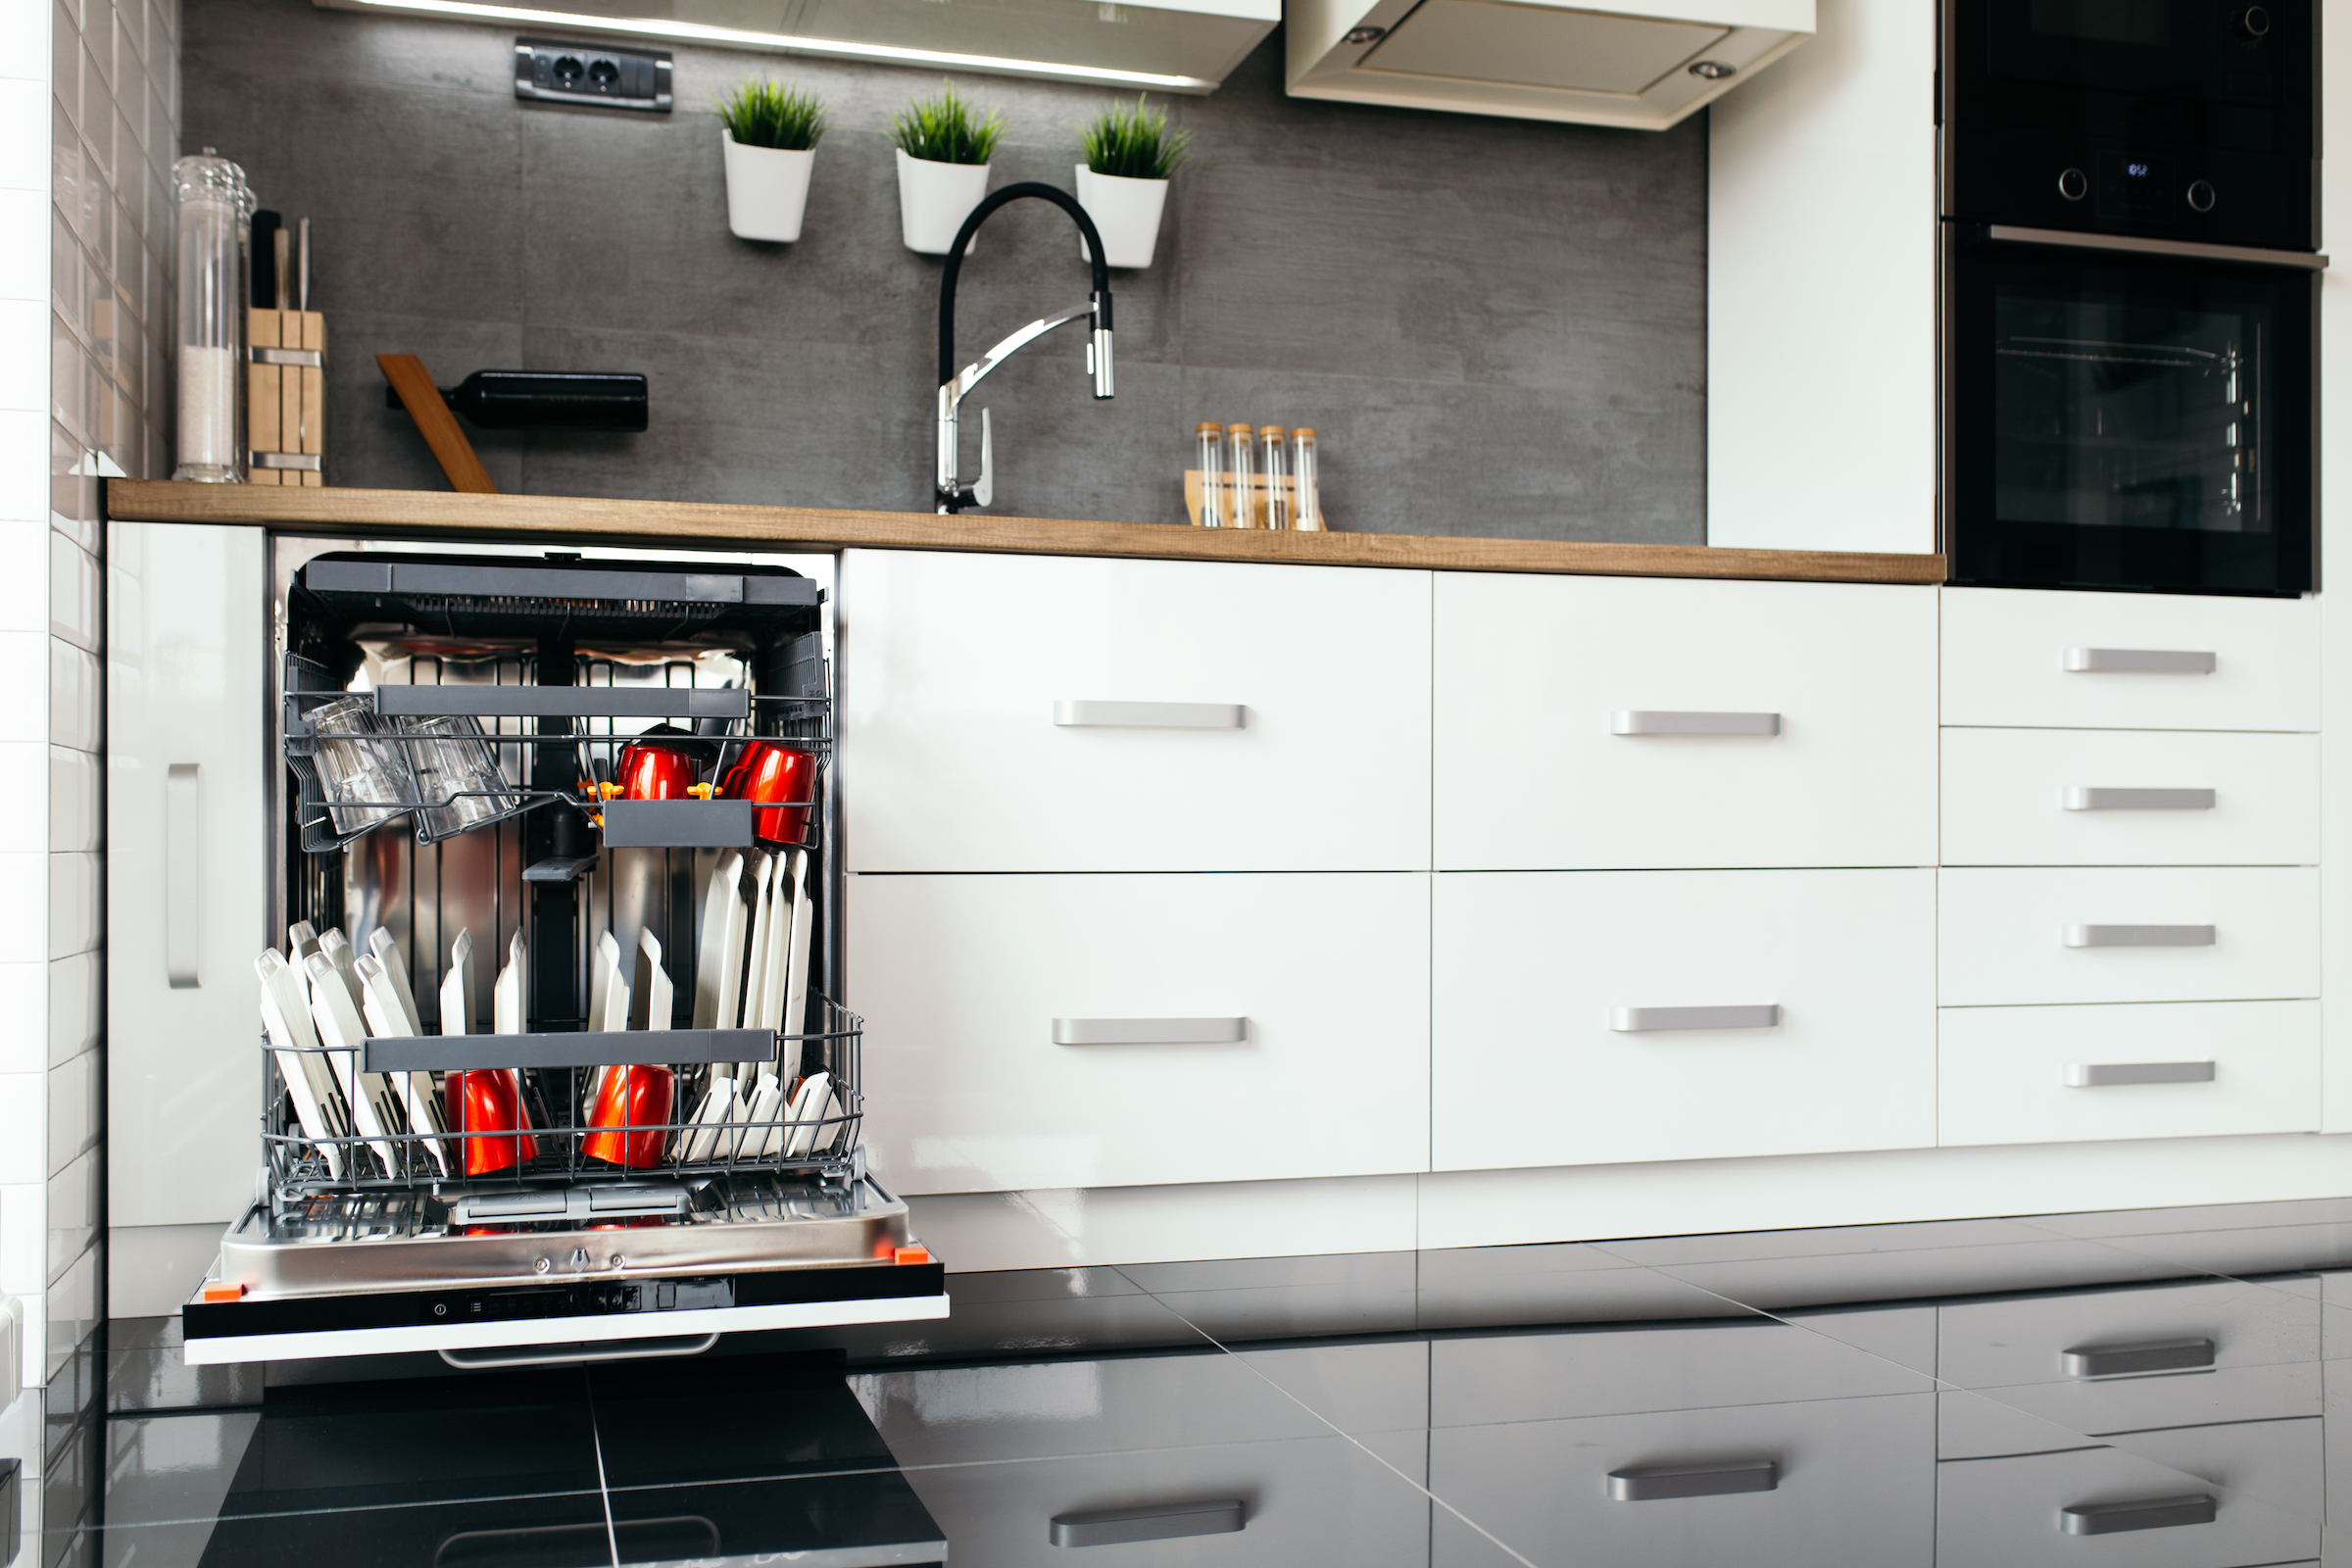 When looking at the best new dishwashers, it's important to remember the fundamental features you need.